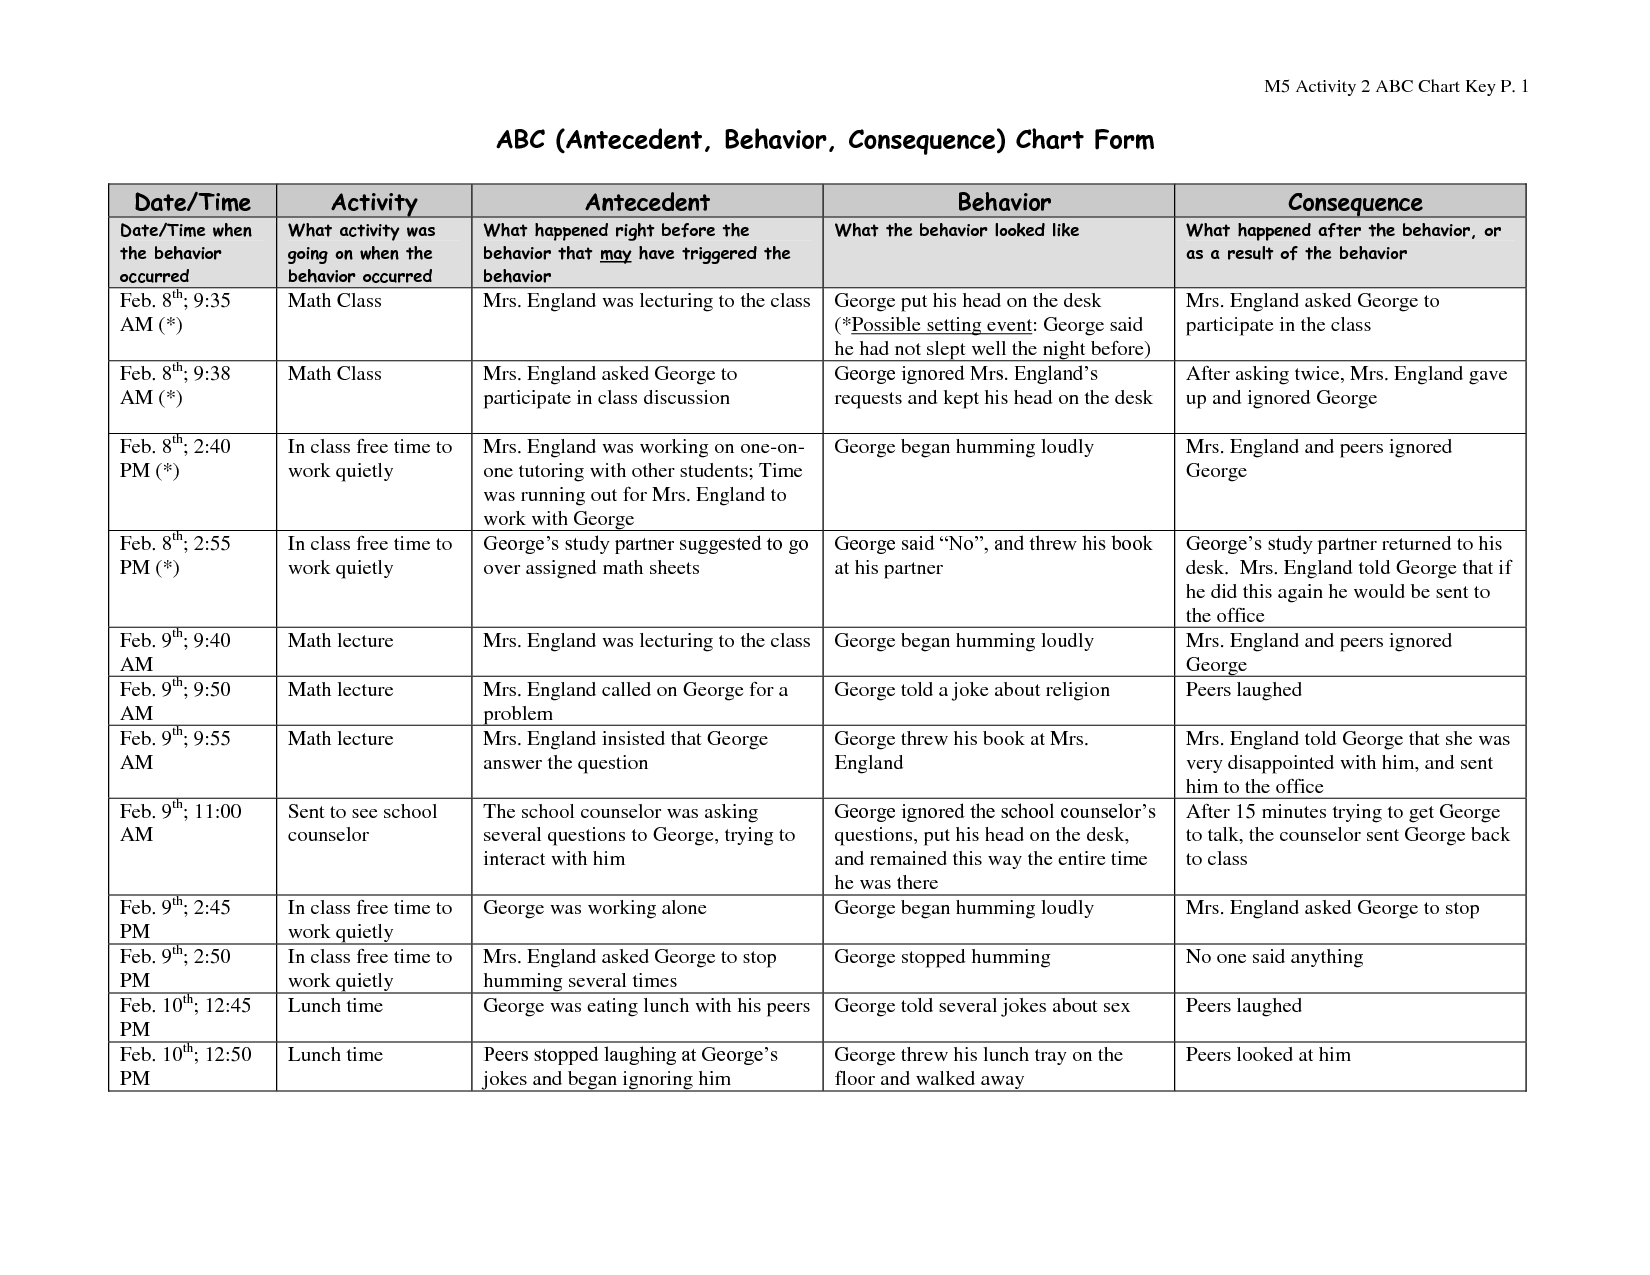 Accepting Others Worksheet